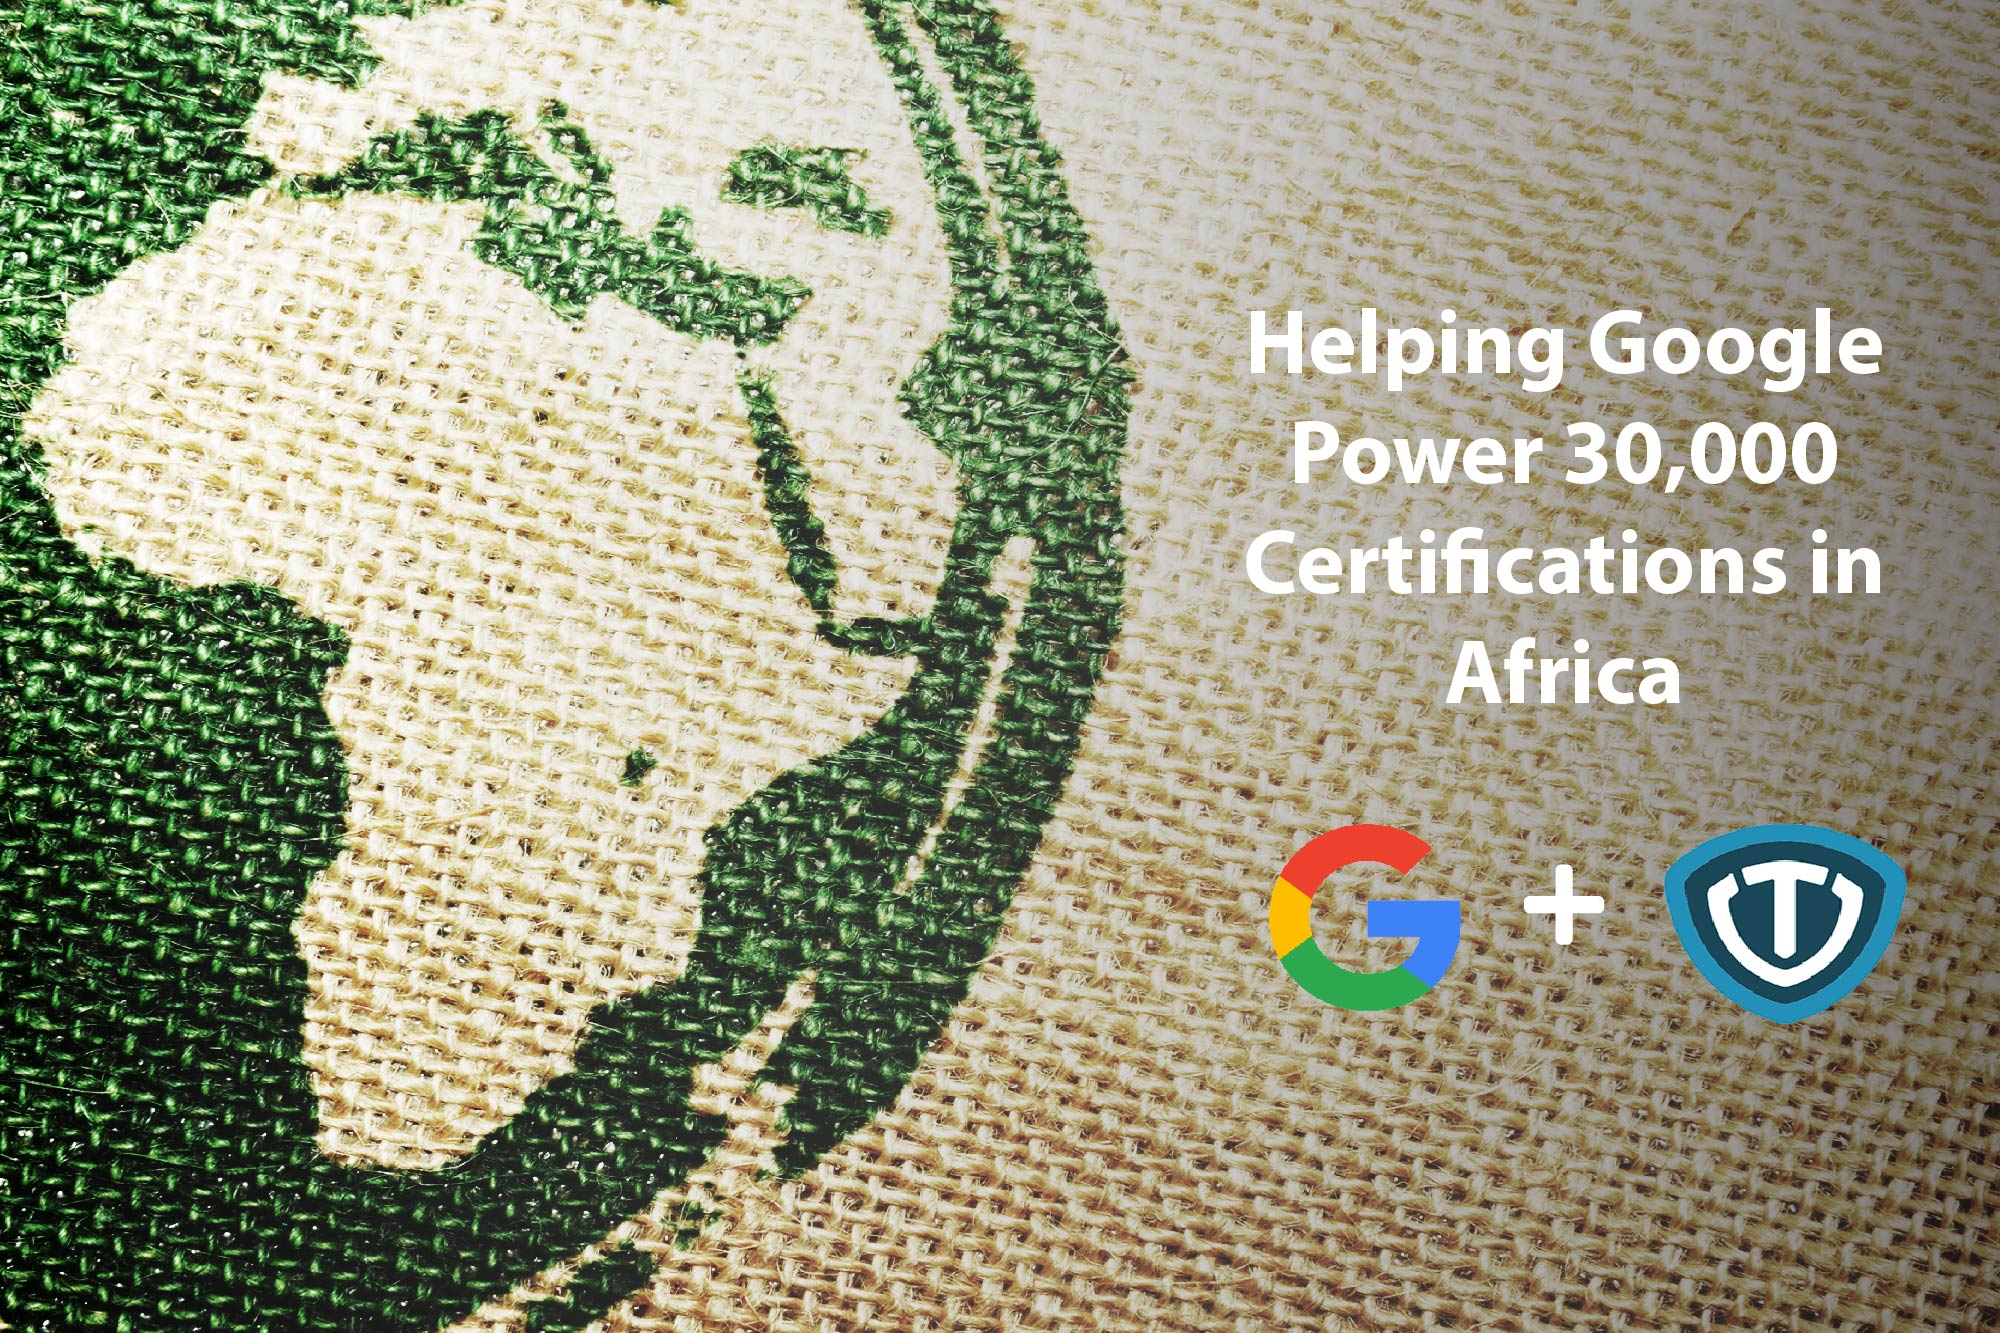 Helping Google Power 30,000 Certifications in Africa